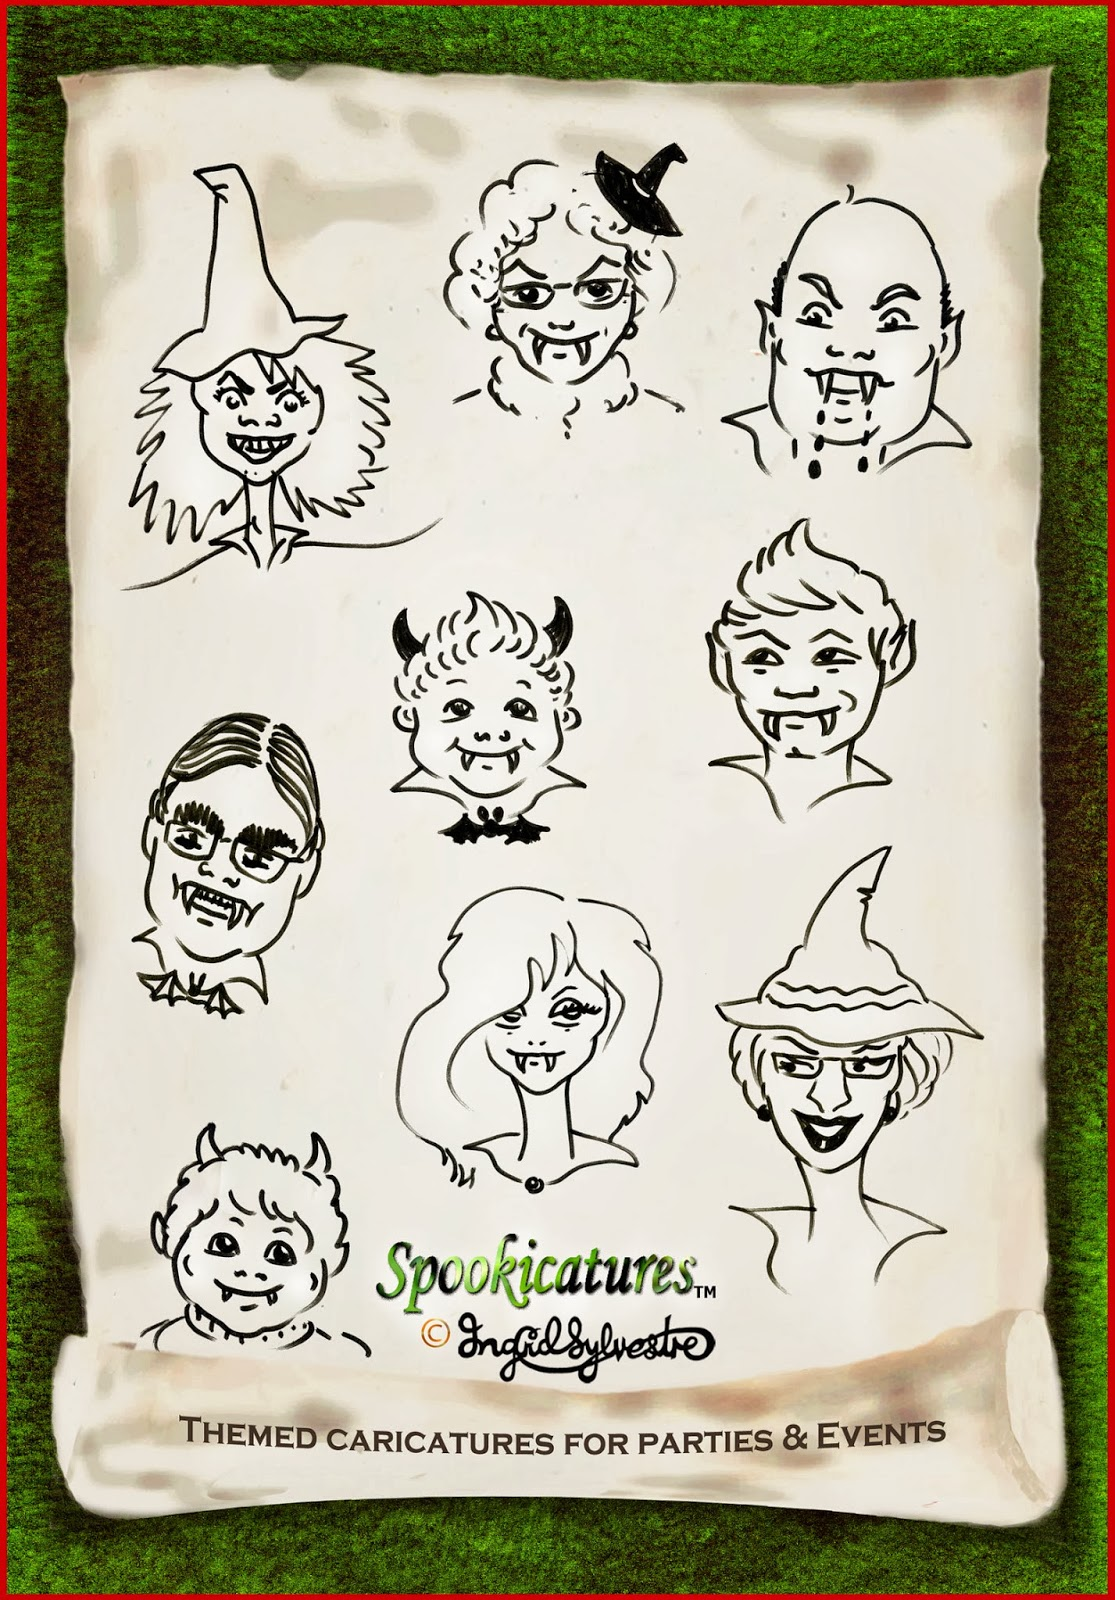 Hallowe'en Party Entertainment ideas North East Newcastle Durham - Spookicatures TM - themed caricatures for parties and events - Ingrid Sylvestre caricaturist UK & worldwide